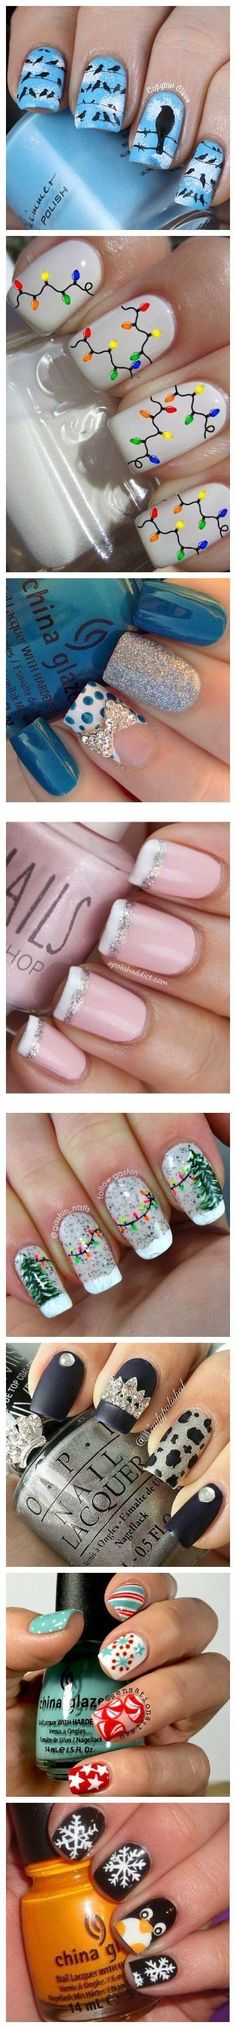 Best Nail Design Ideas. For similar content follow me @jpsunshine10041